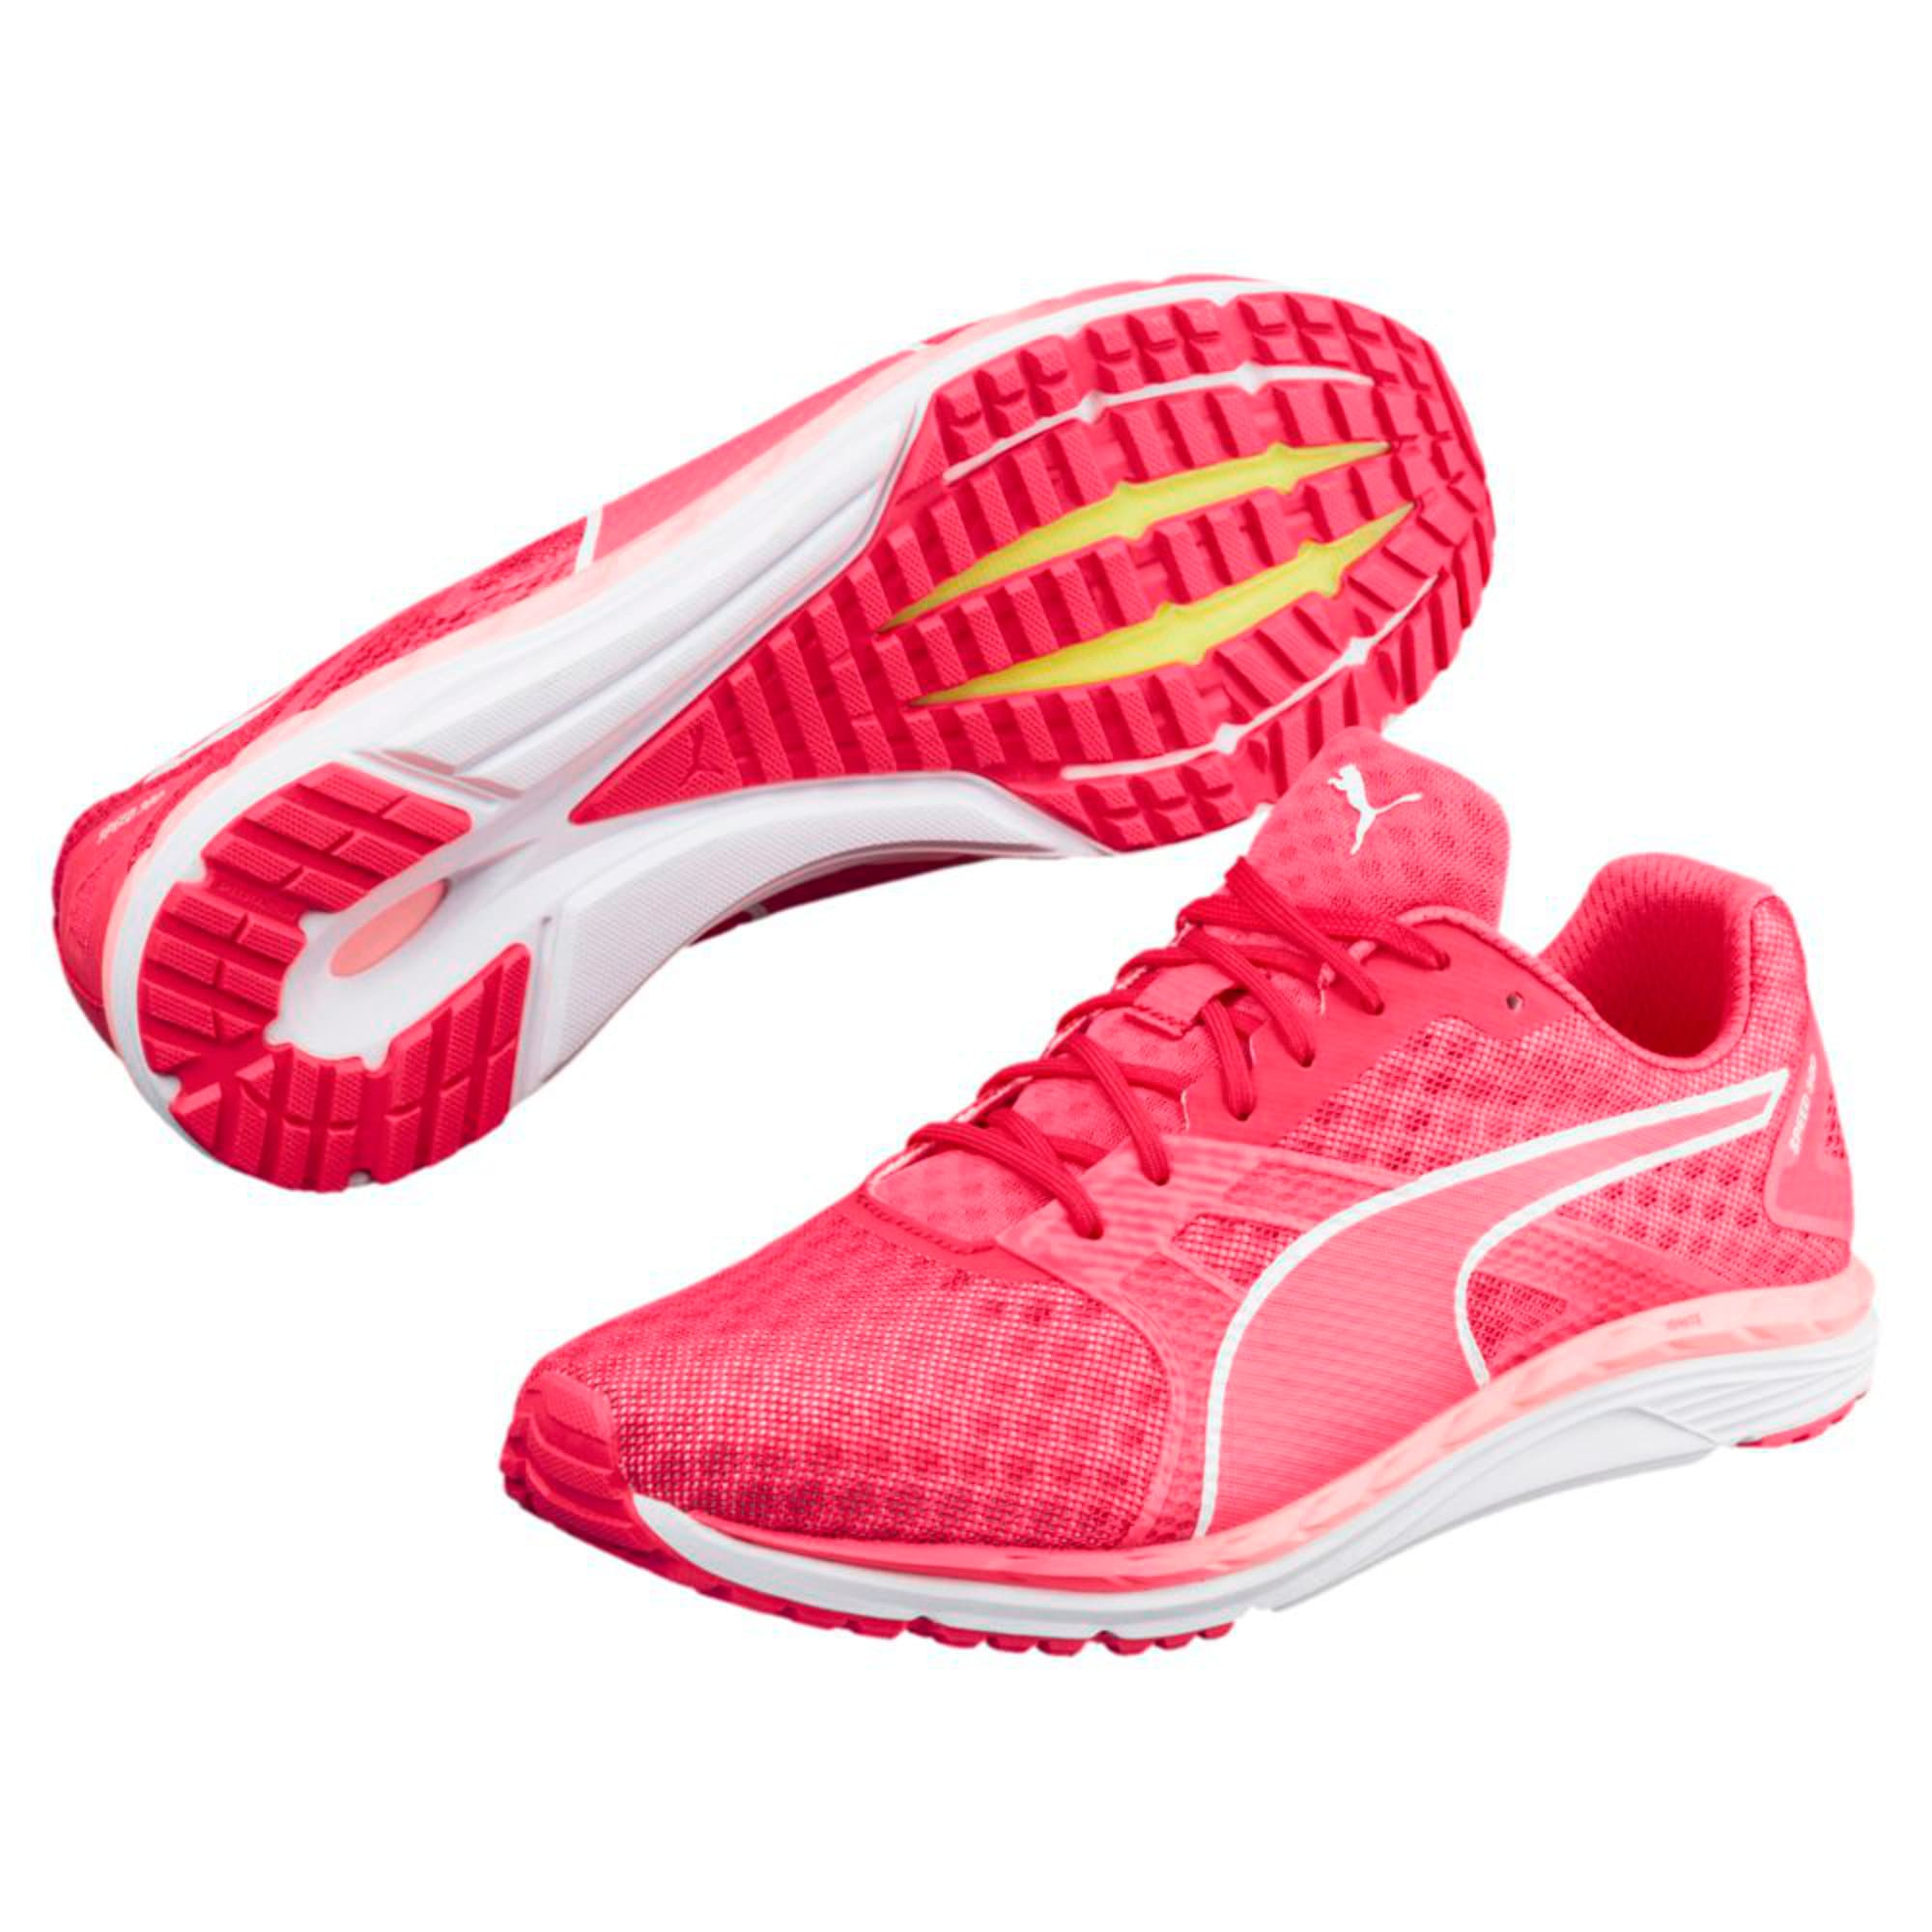 Thumbnail 6 of Speed 300 IGNITE 3 Women's Running Shoes, Pink-Fluo Peach-White, medium-IND